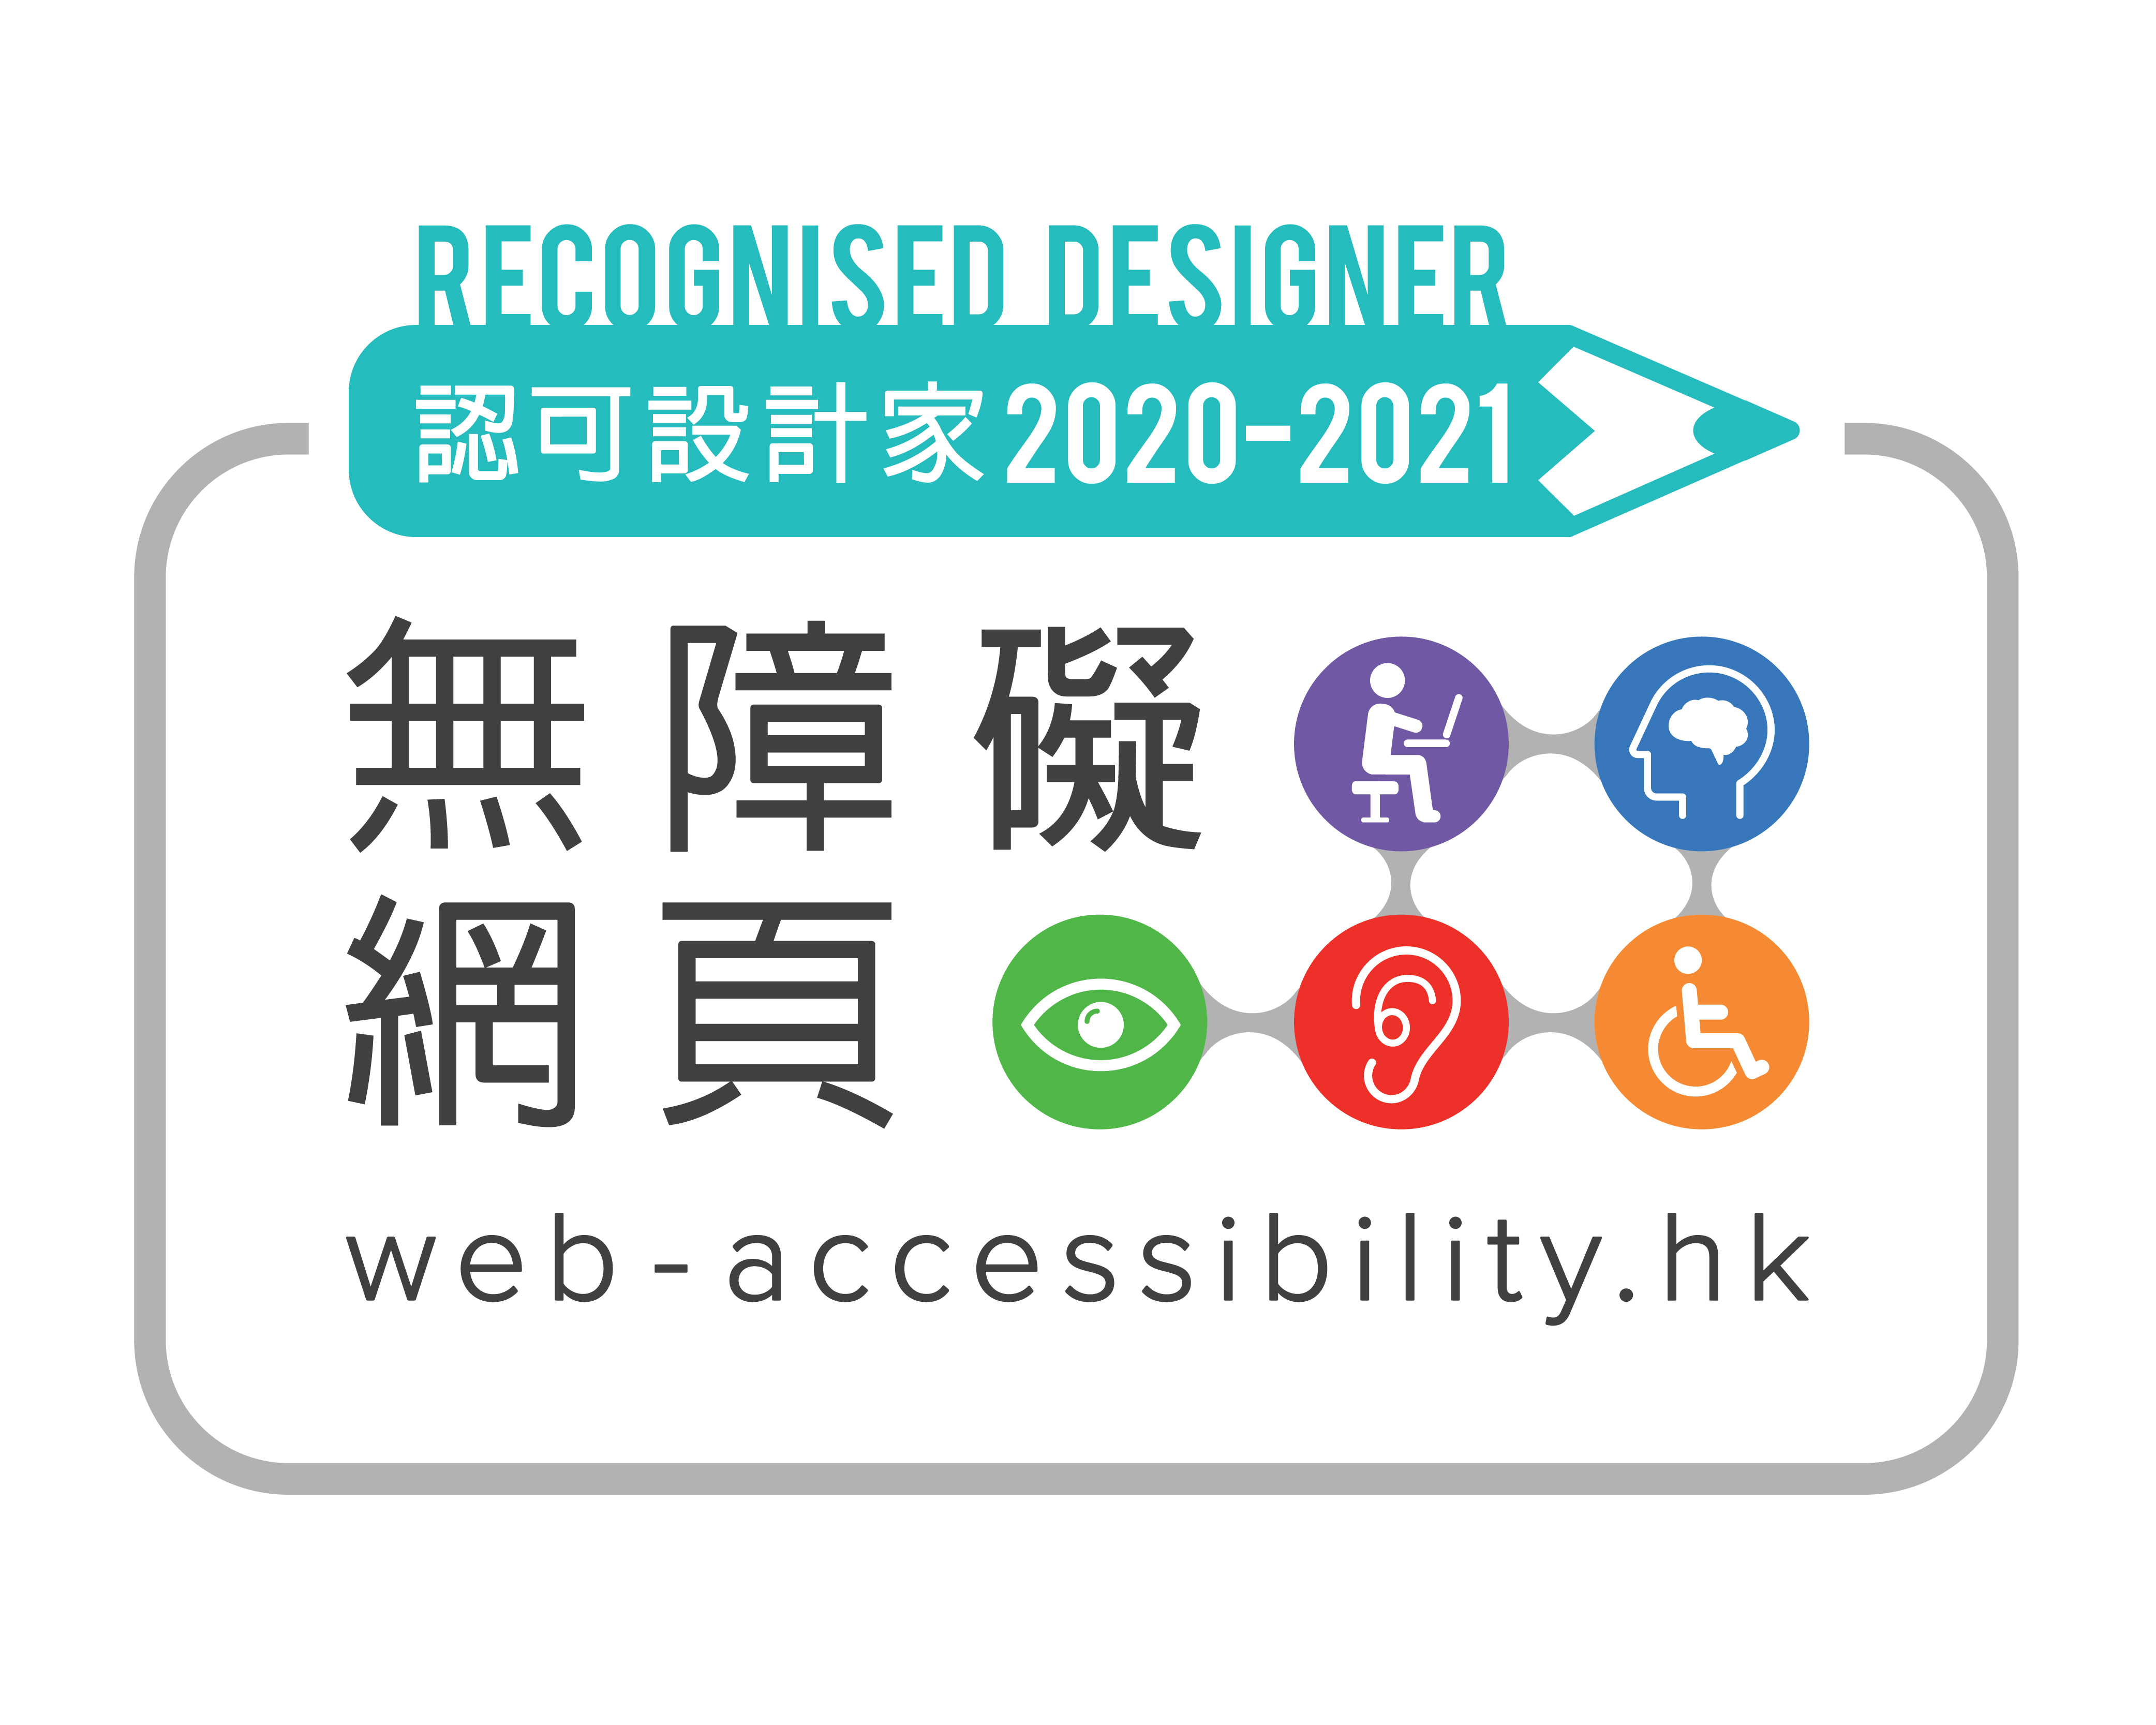 Web Accessibility Recognition Scheme 2018 - Recognised Designer